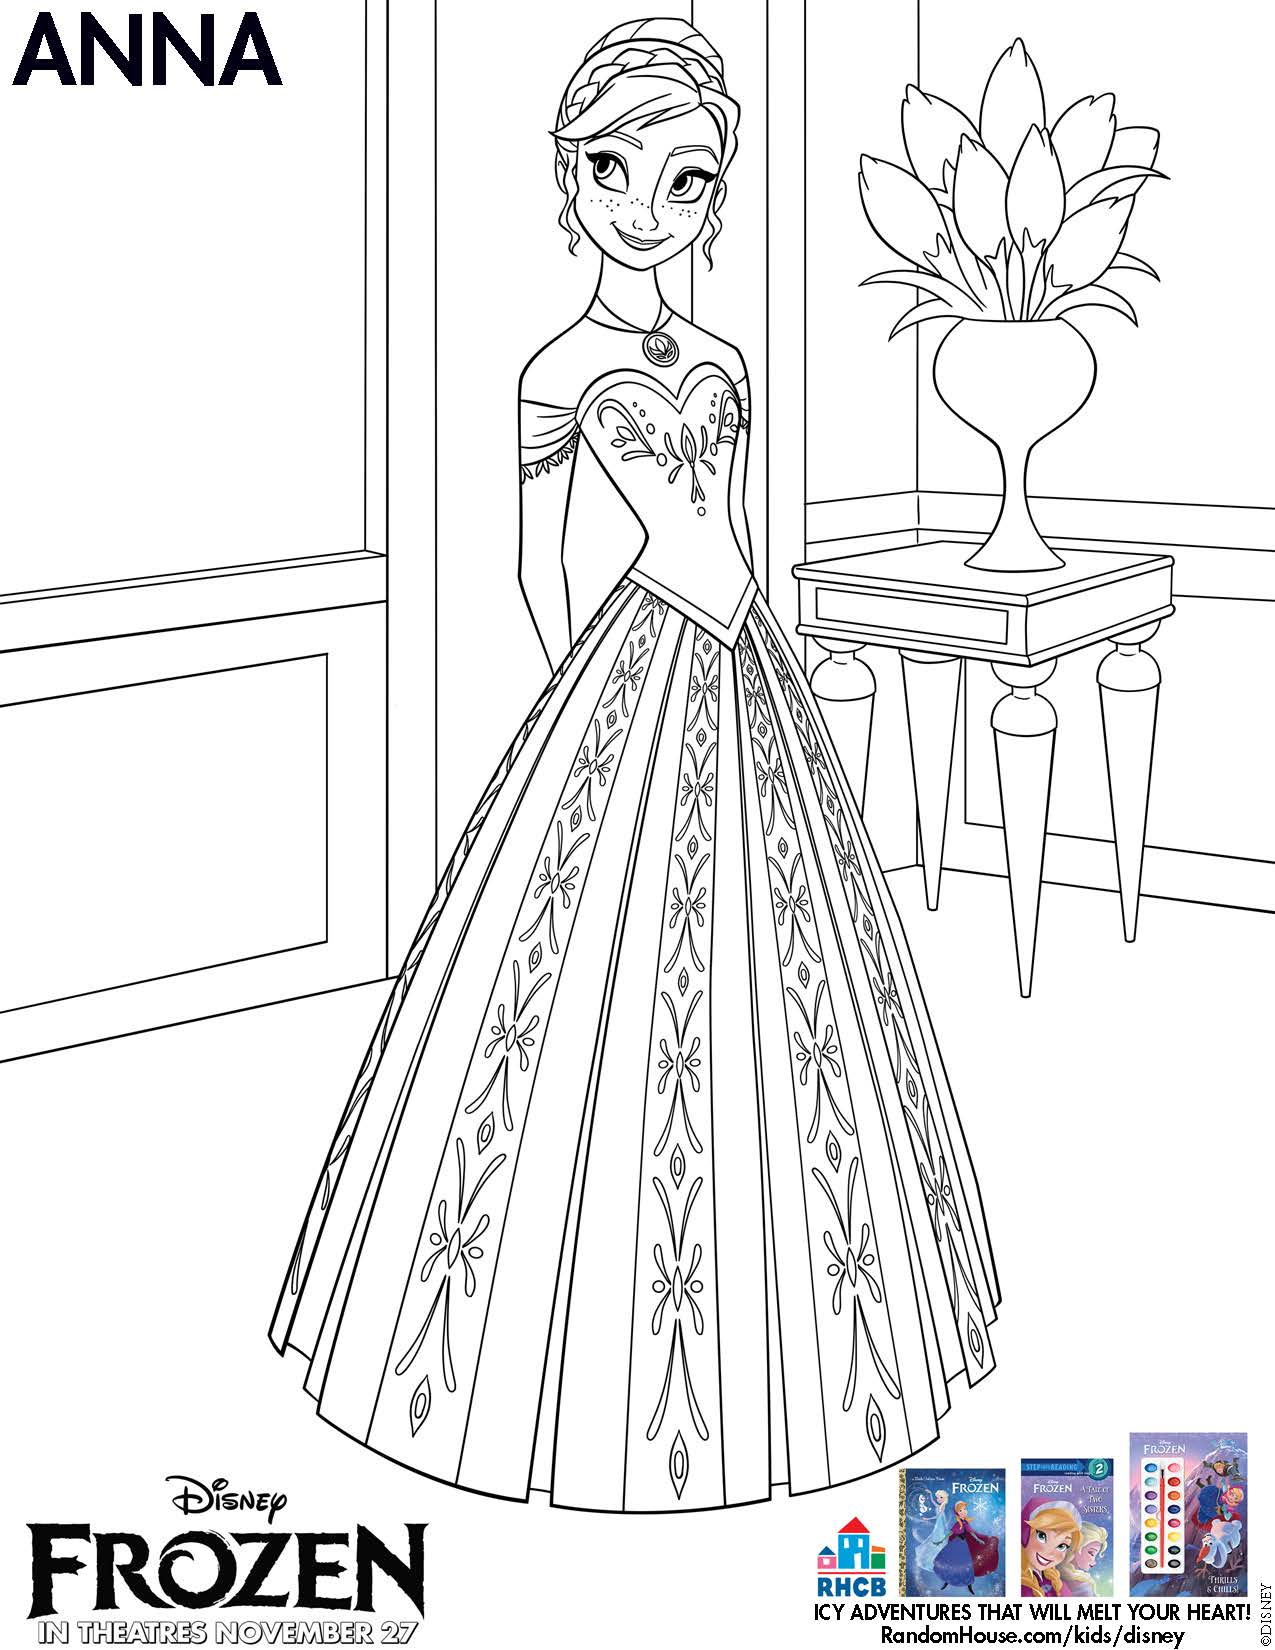 Wonderful Frozenu0027s Anna Images Anna Coloring Page HD Wallpaper And Background Photos Design Ideas